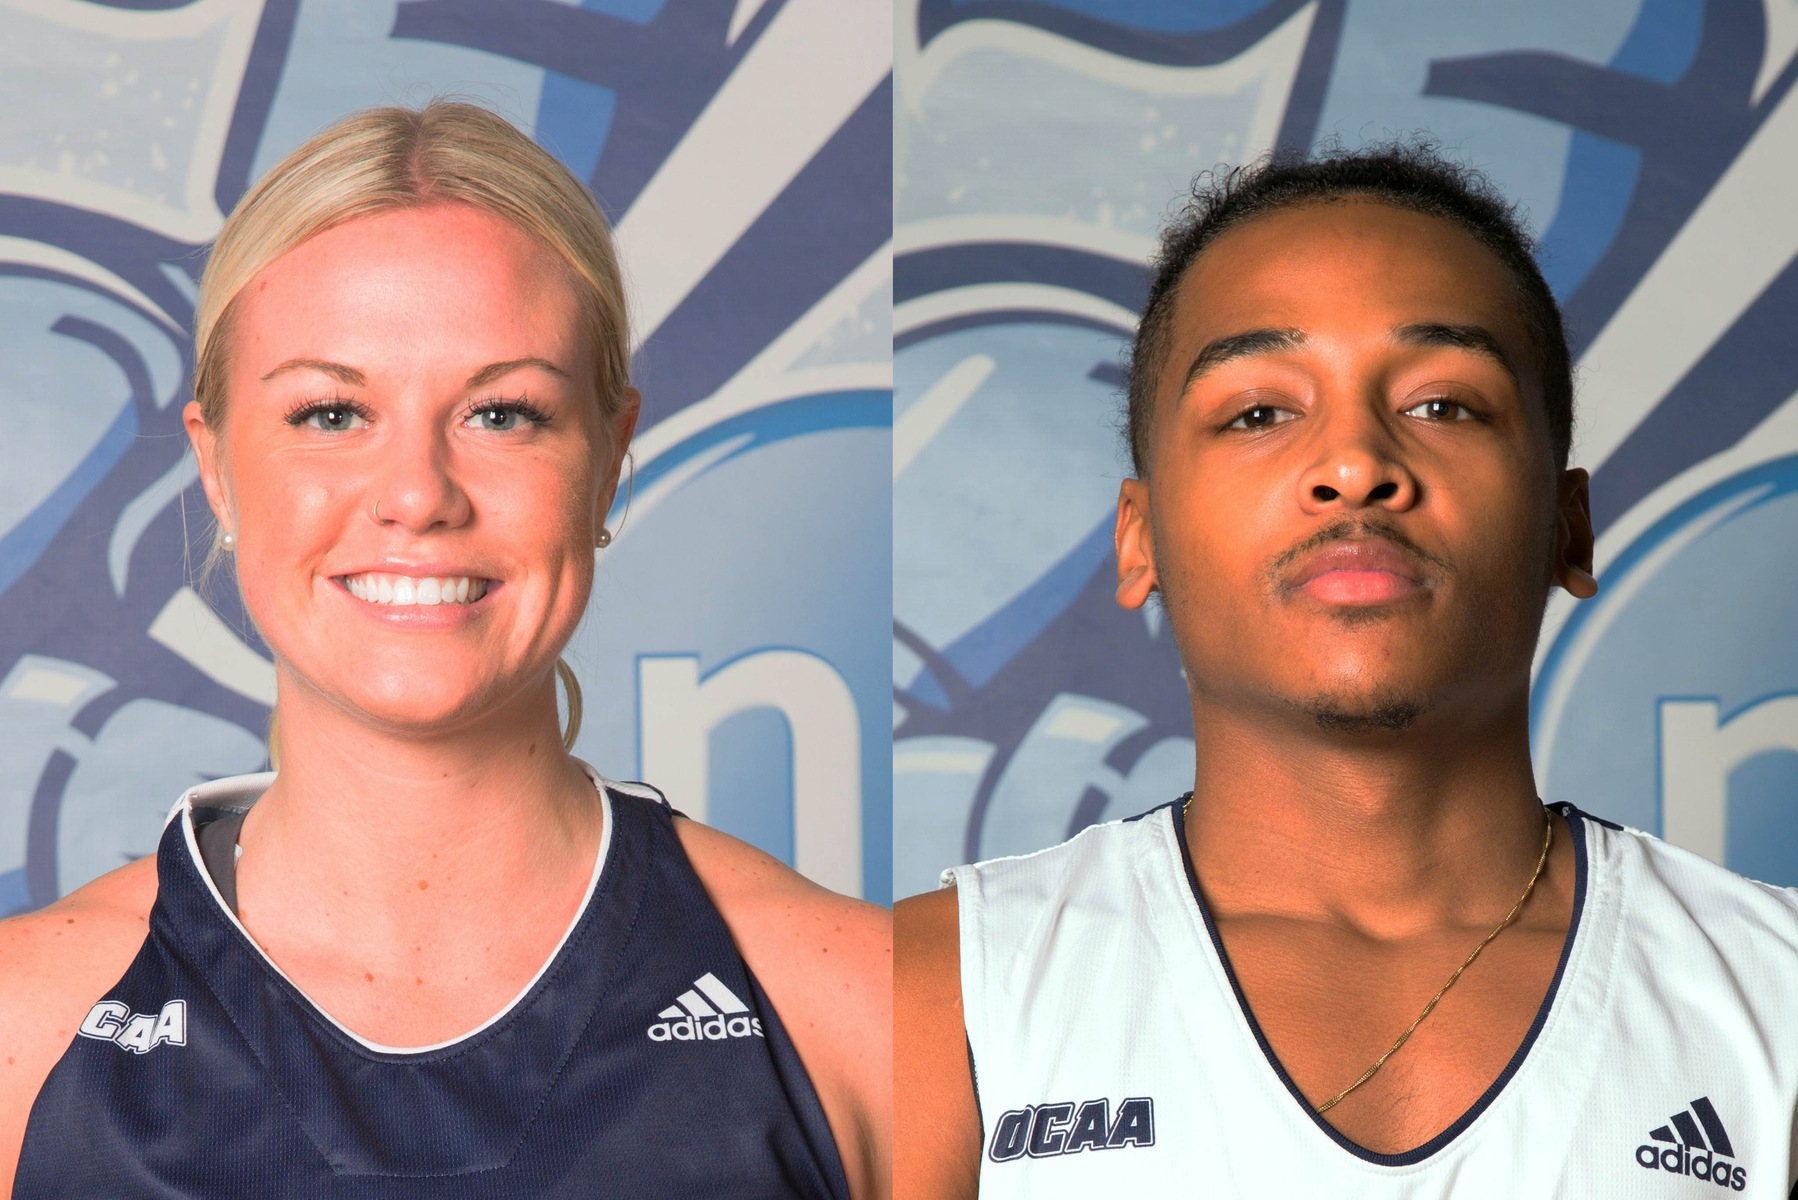 Murdoch and Hylton named Athletes of the Week